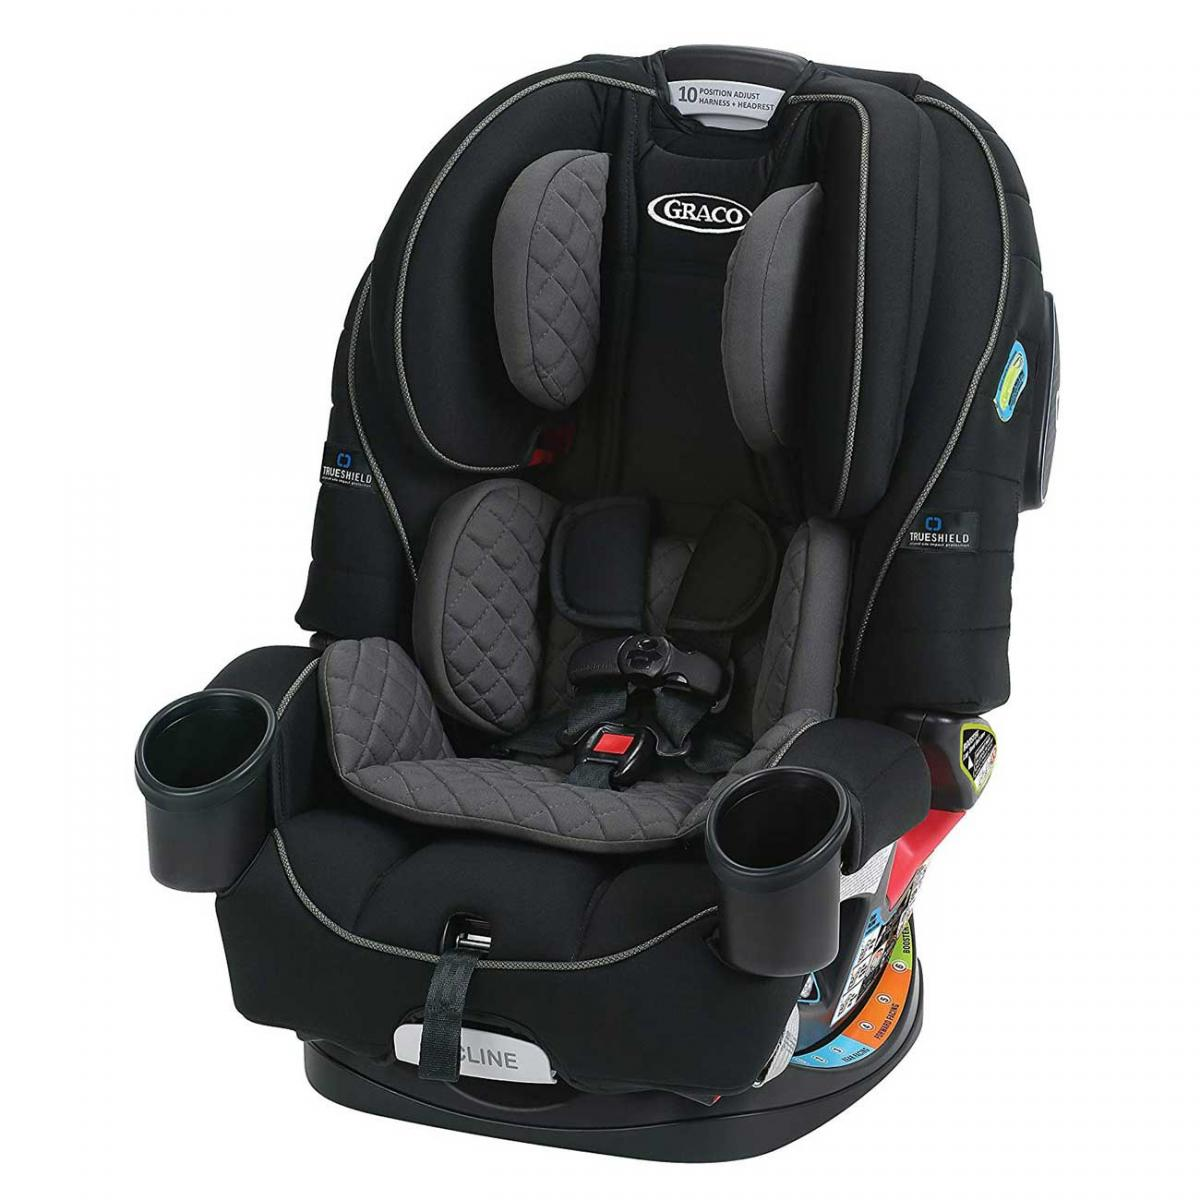 Graco 4-in-1 Car Seat Featuring TrueShield Technology